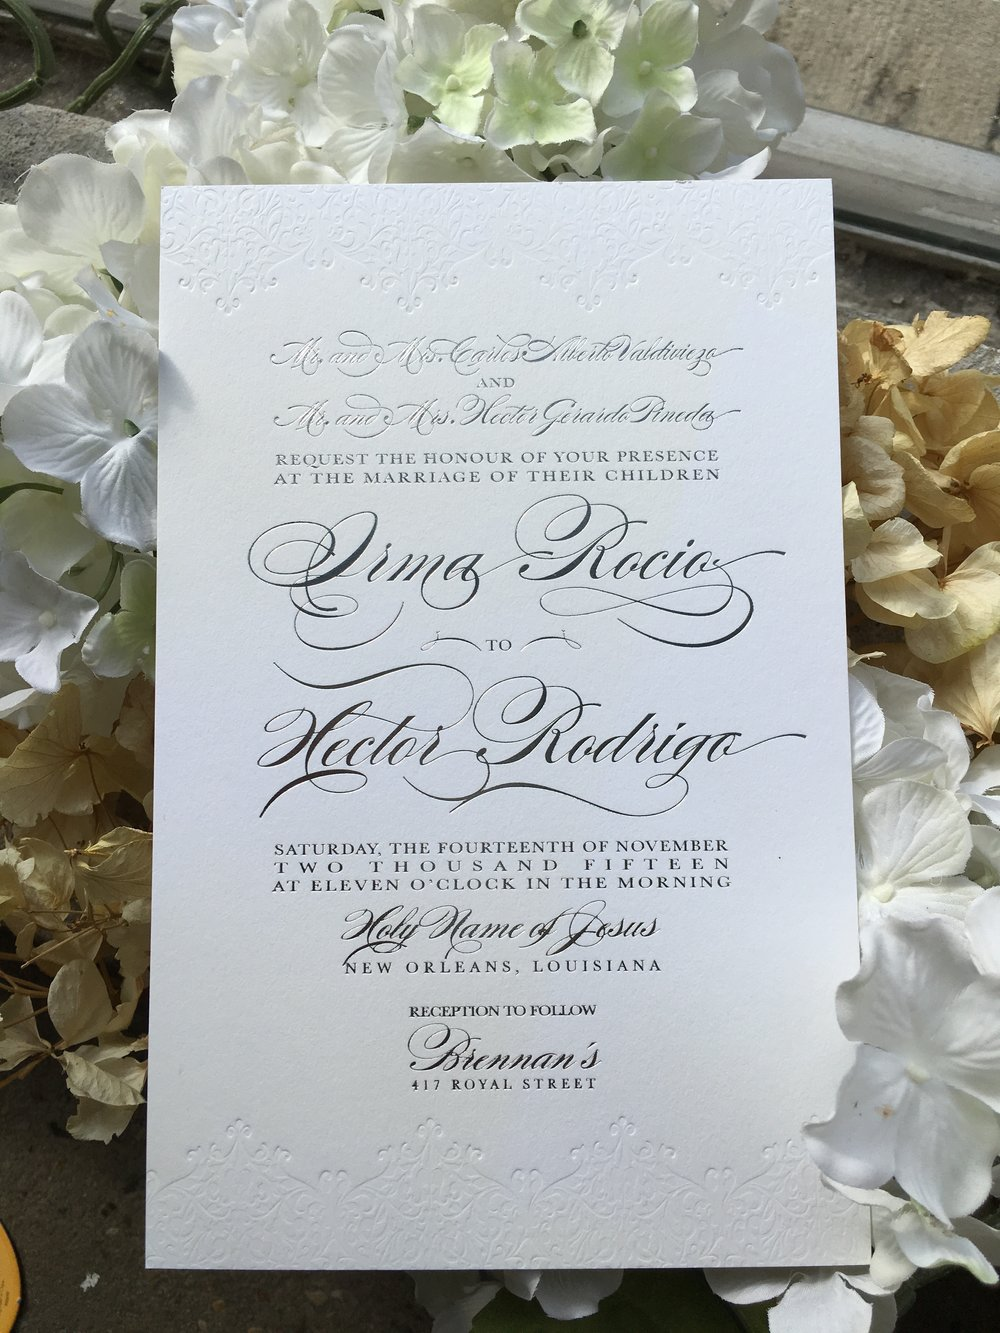 event invitations new orleans.jpg